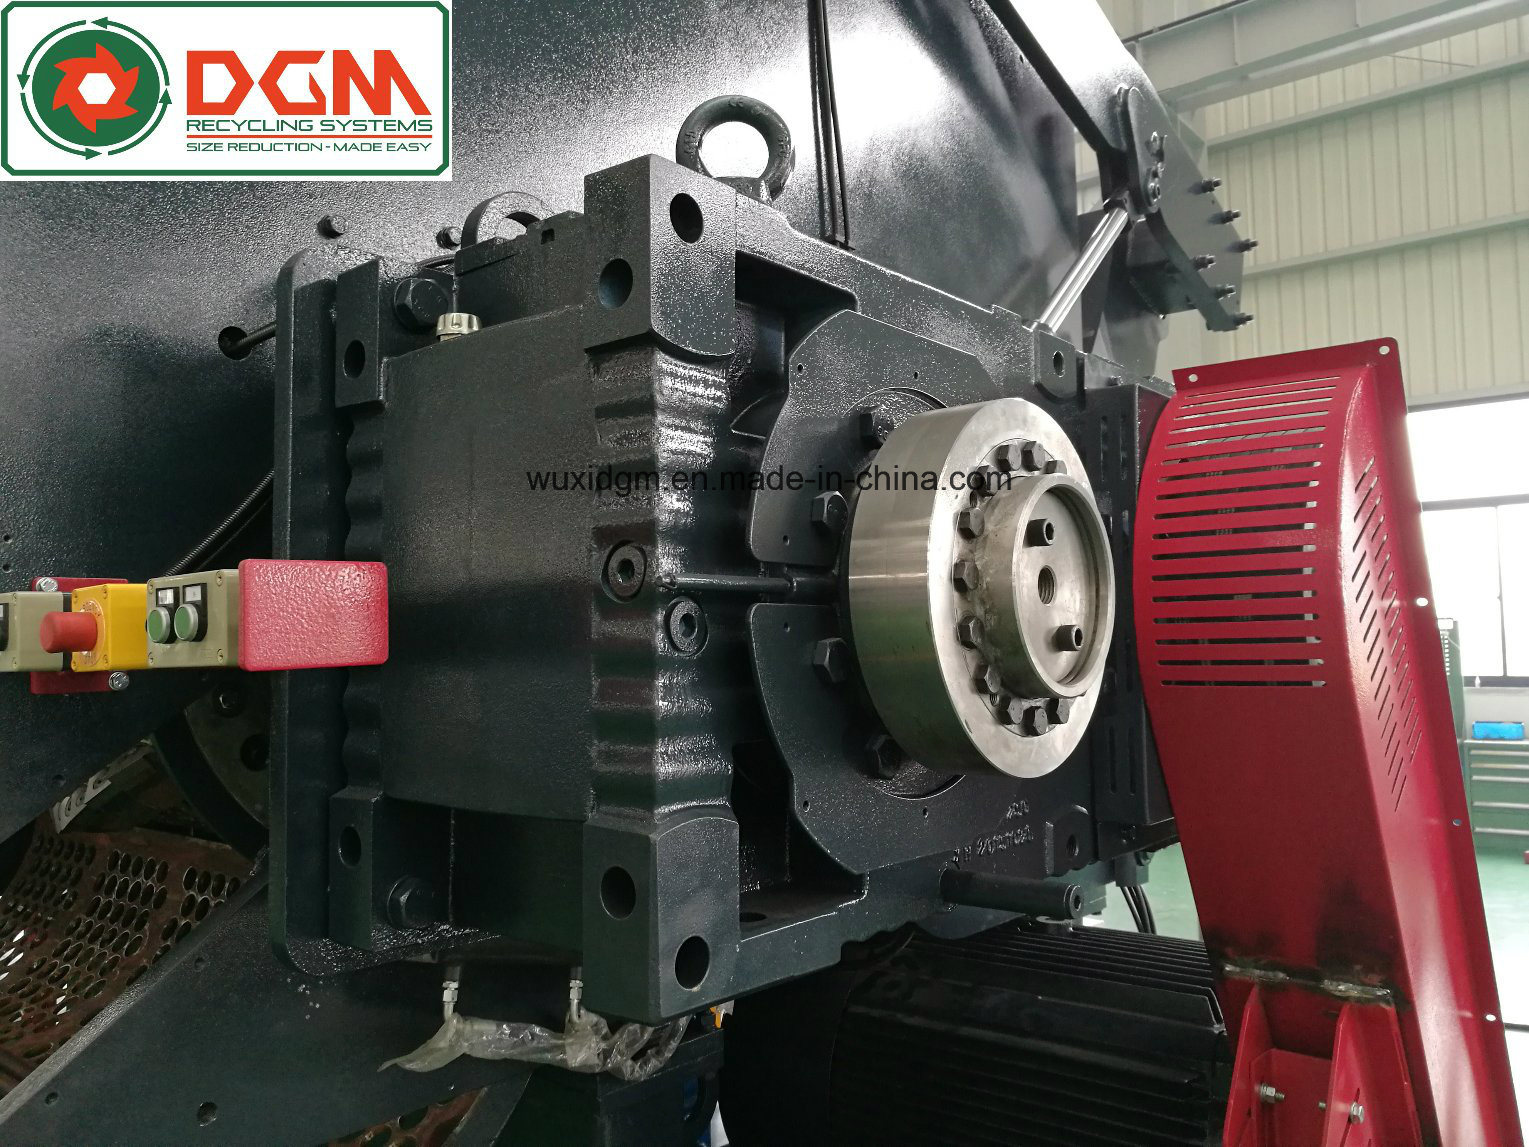 Dgx2000t Heavy Duty Single Shaft Shredder for Tires